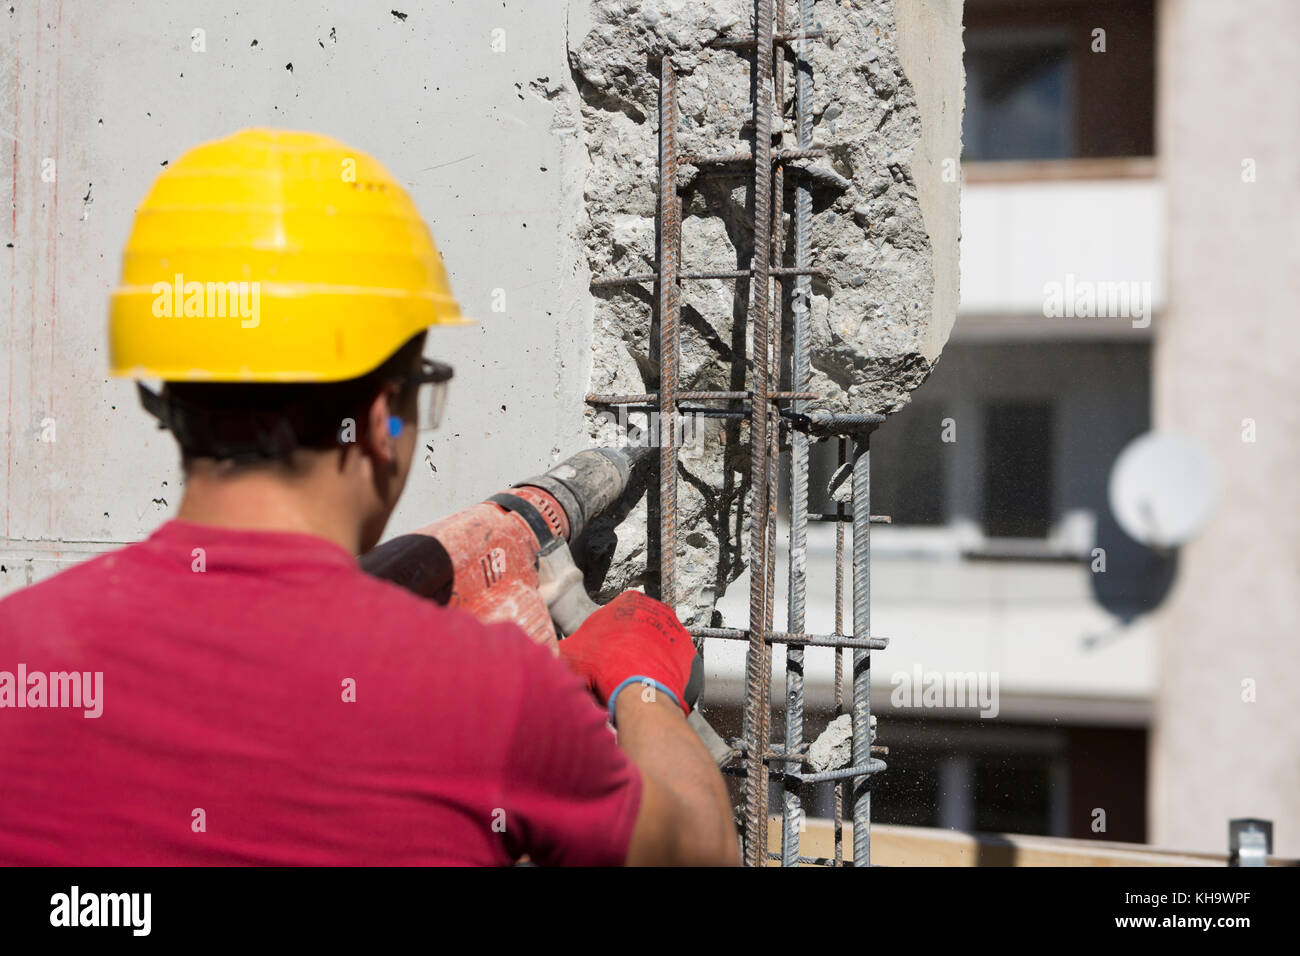 Construction worker using a drilling power tool. - Stock Image